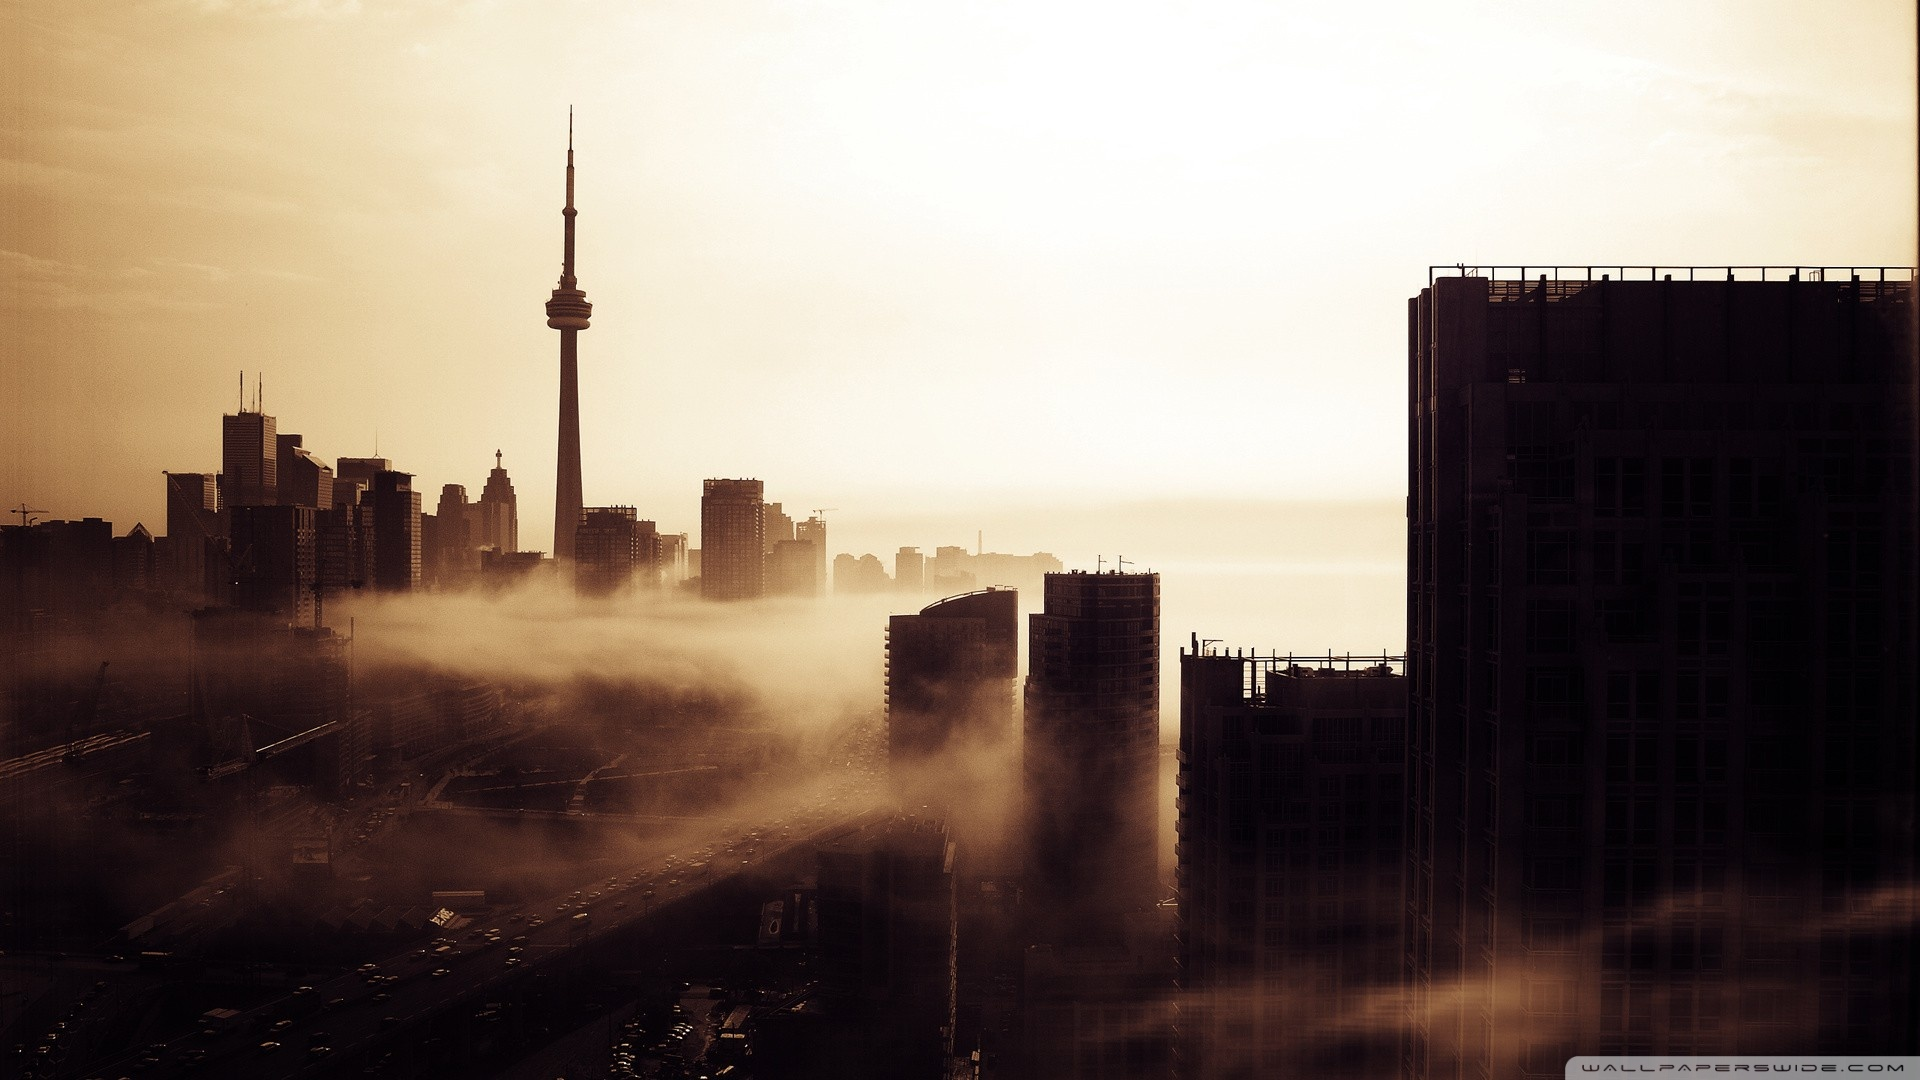 City Fog Wallpaper